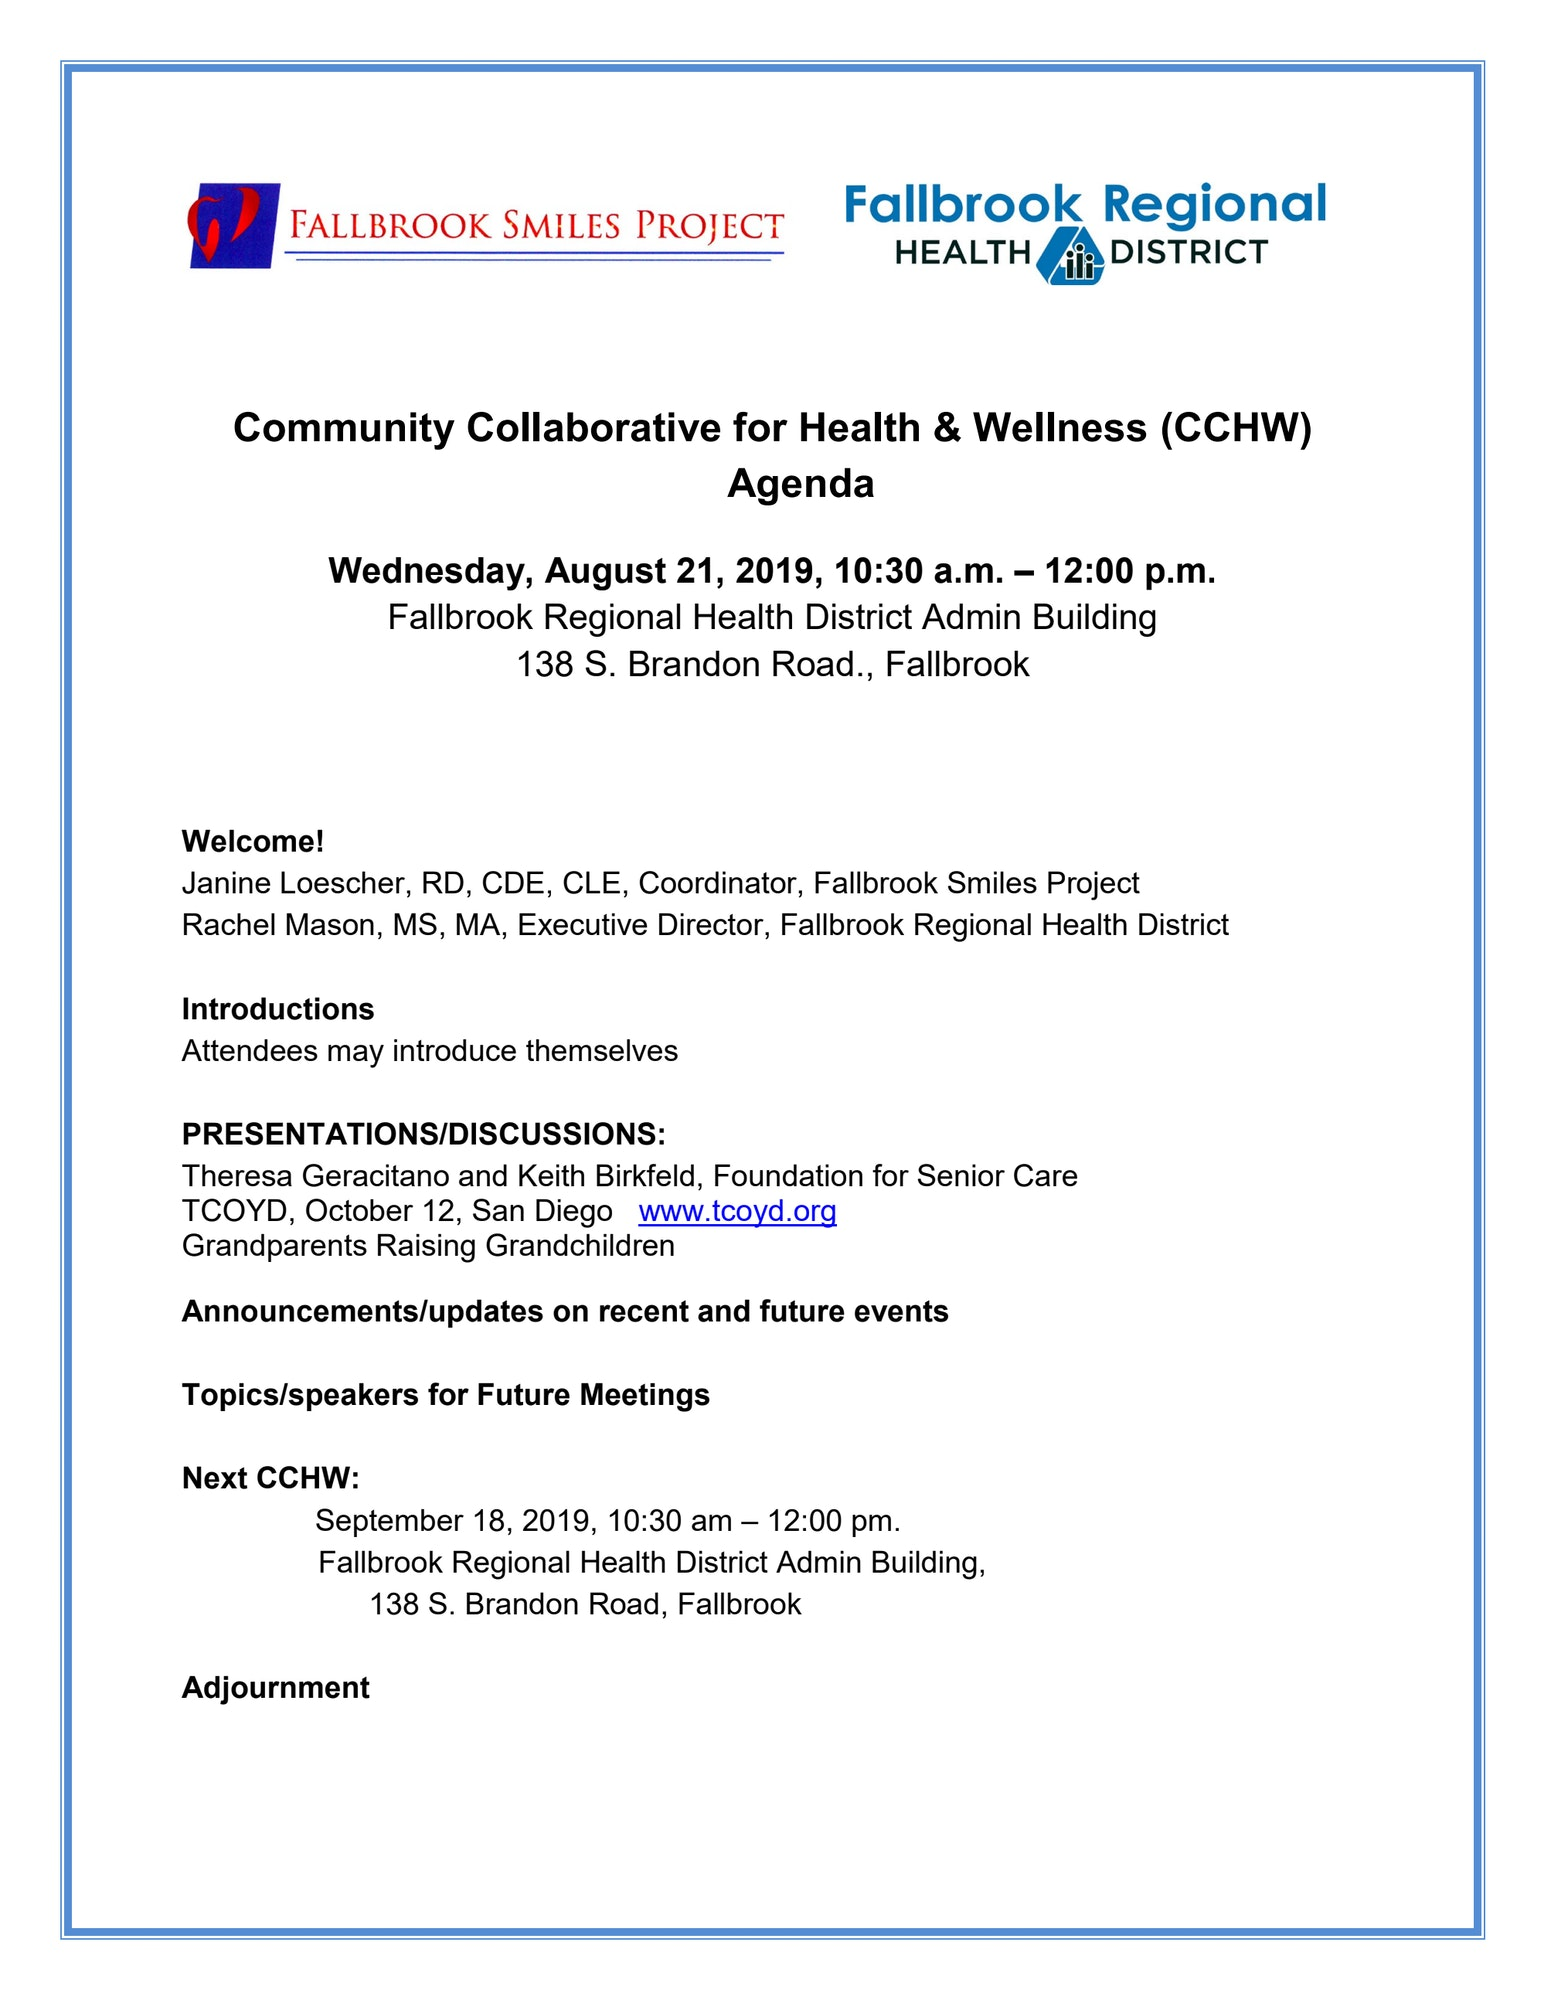 Announcements - Fallbrook Regional Health District